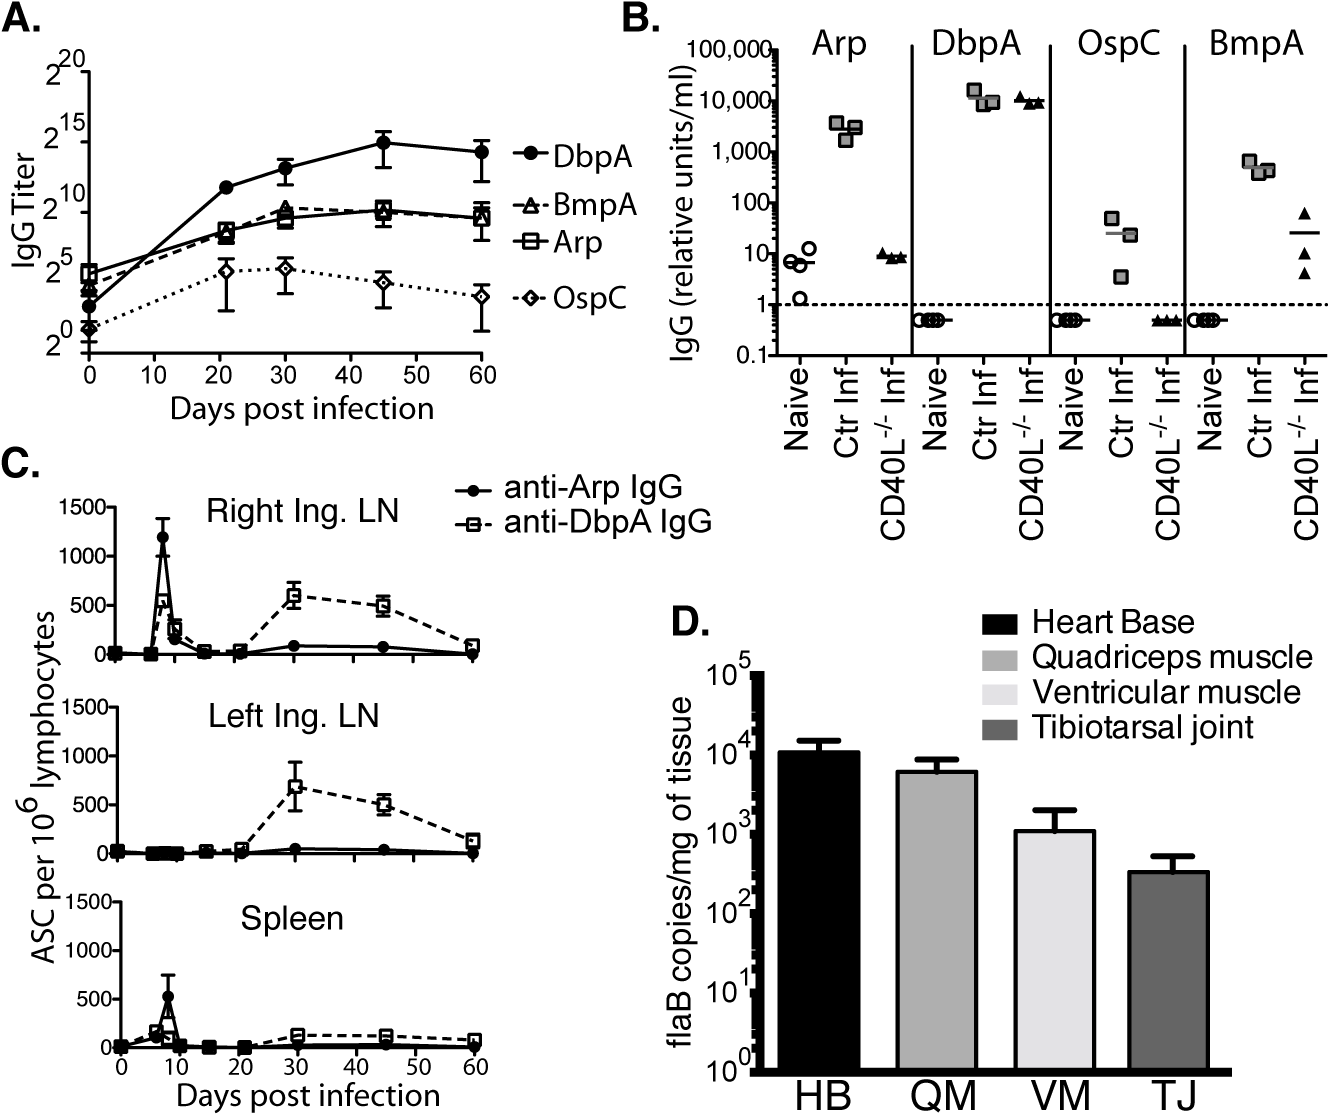 Induction of T-dependent and T-independent antibody responses to long-term Bb infection.